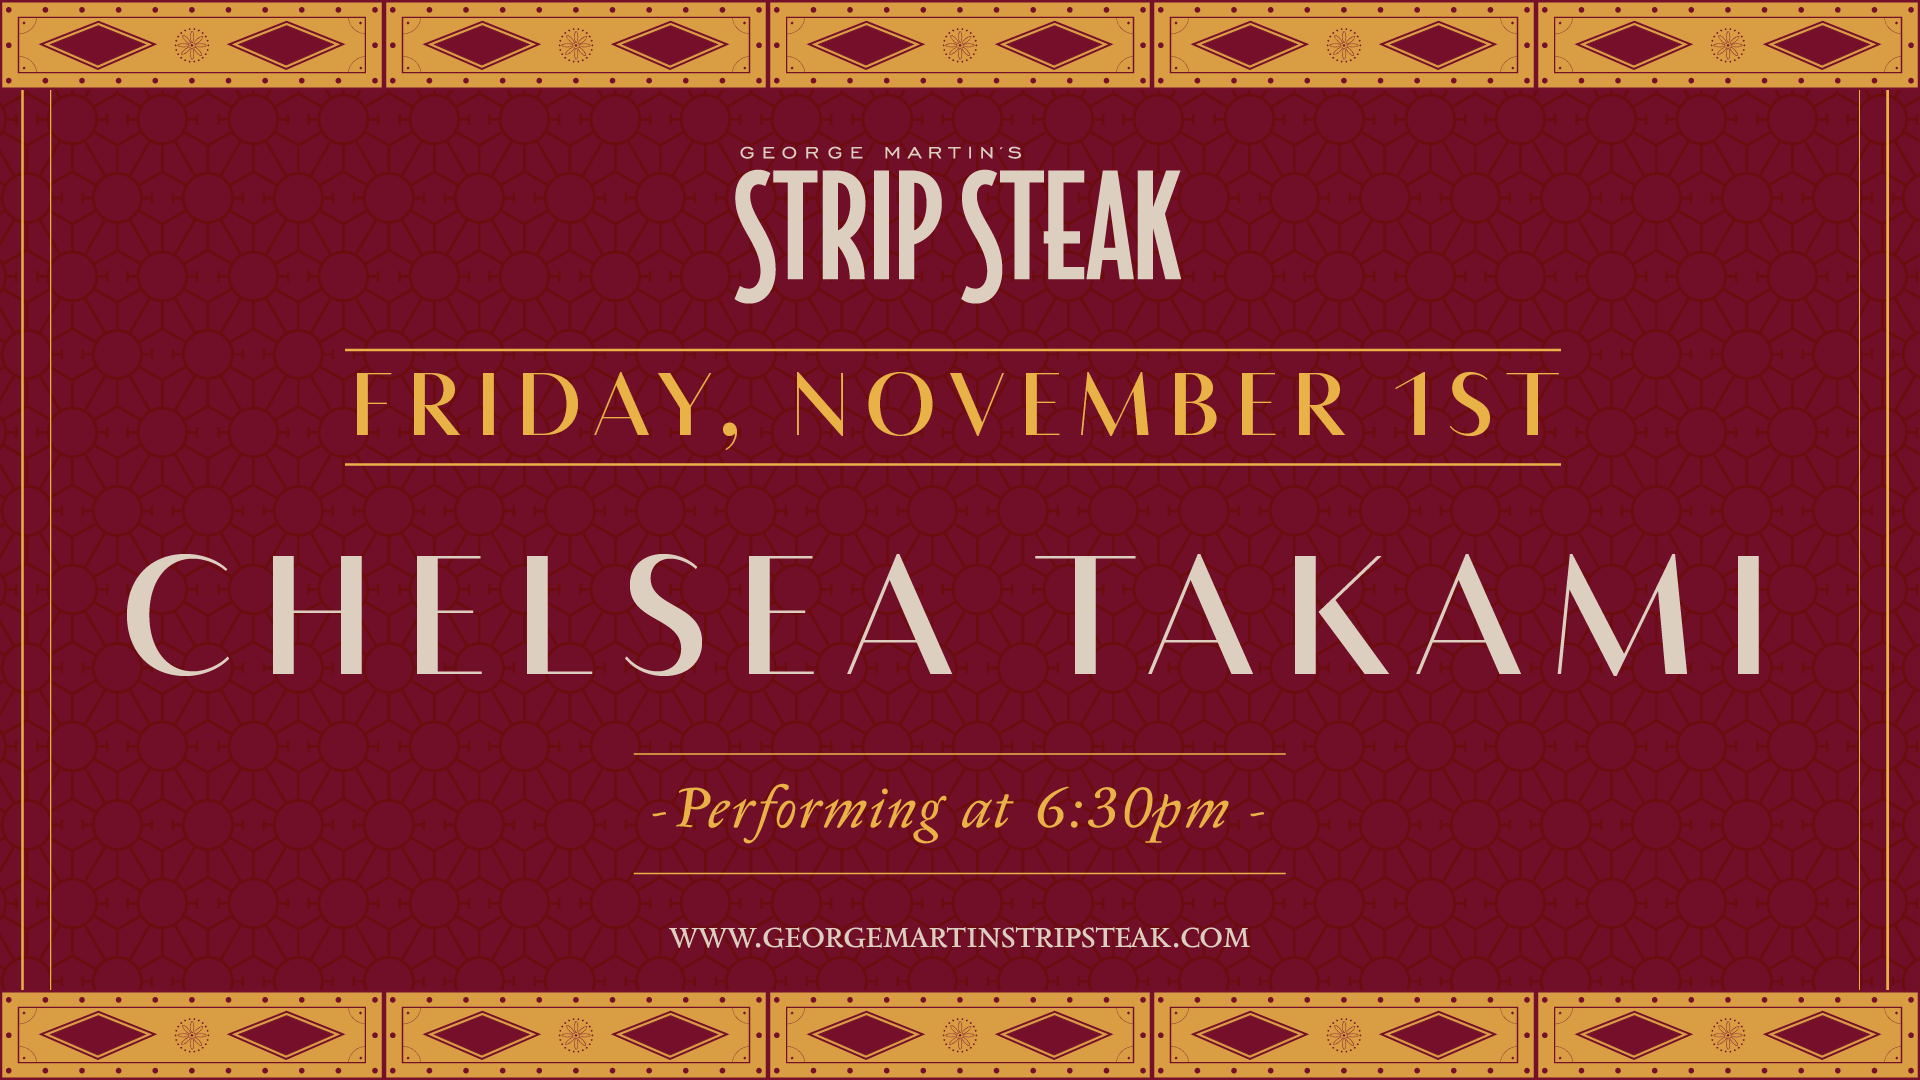 Flyer for Chelsea Takami on Friday, November 1st at 6:30pm.